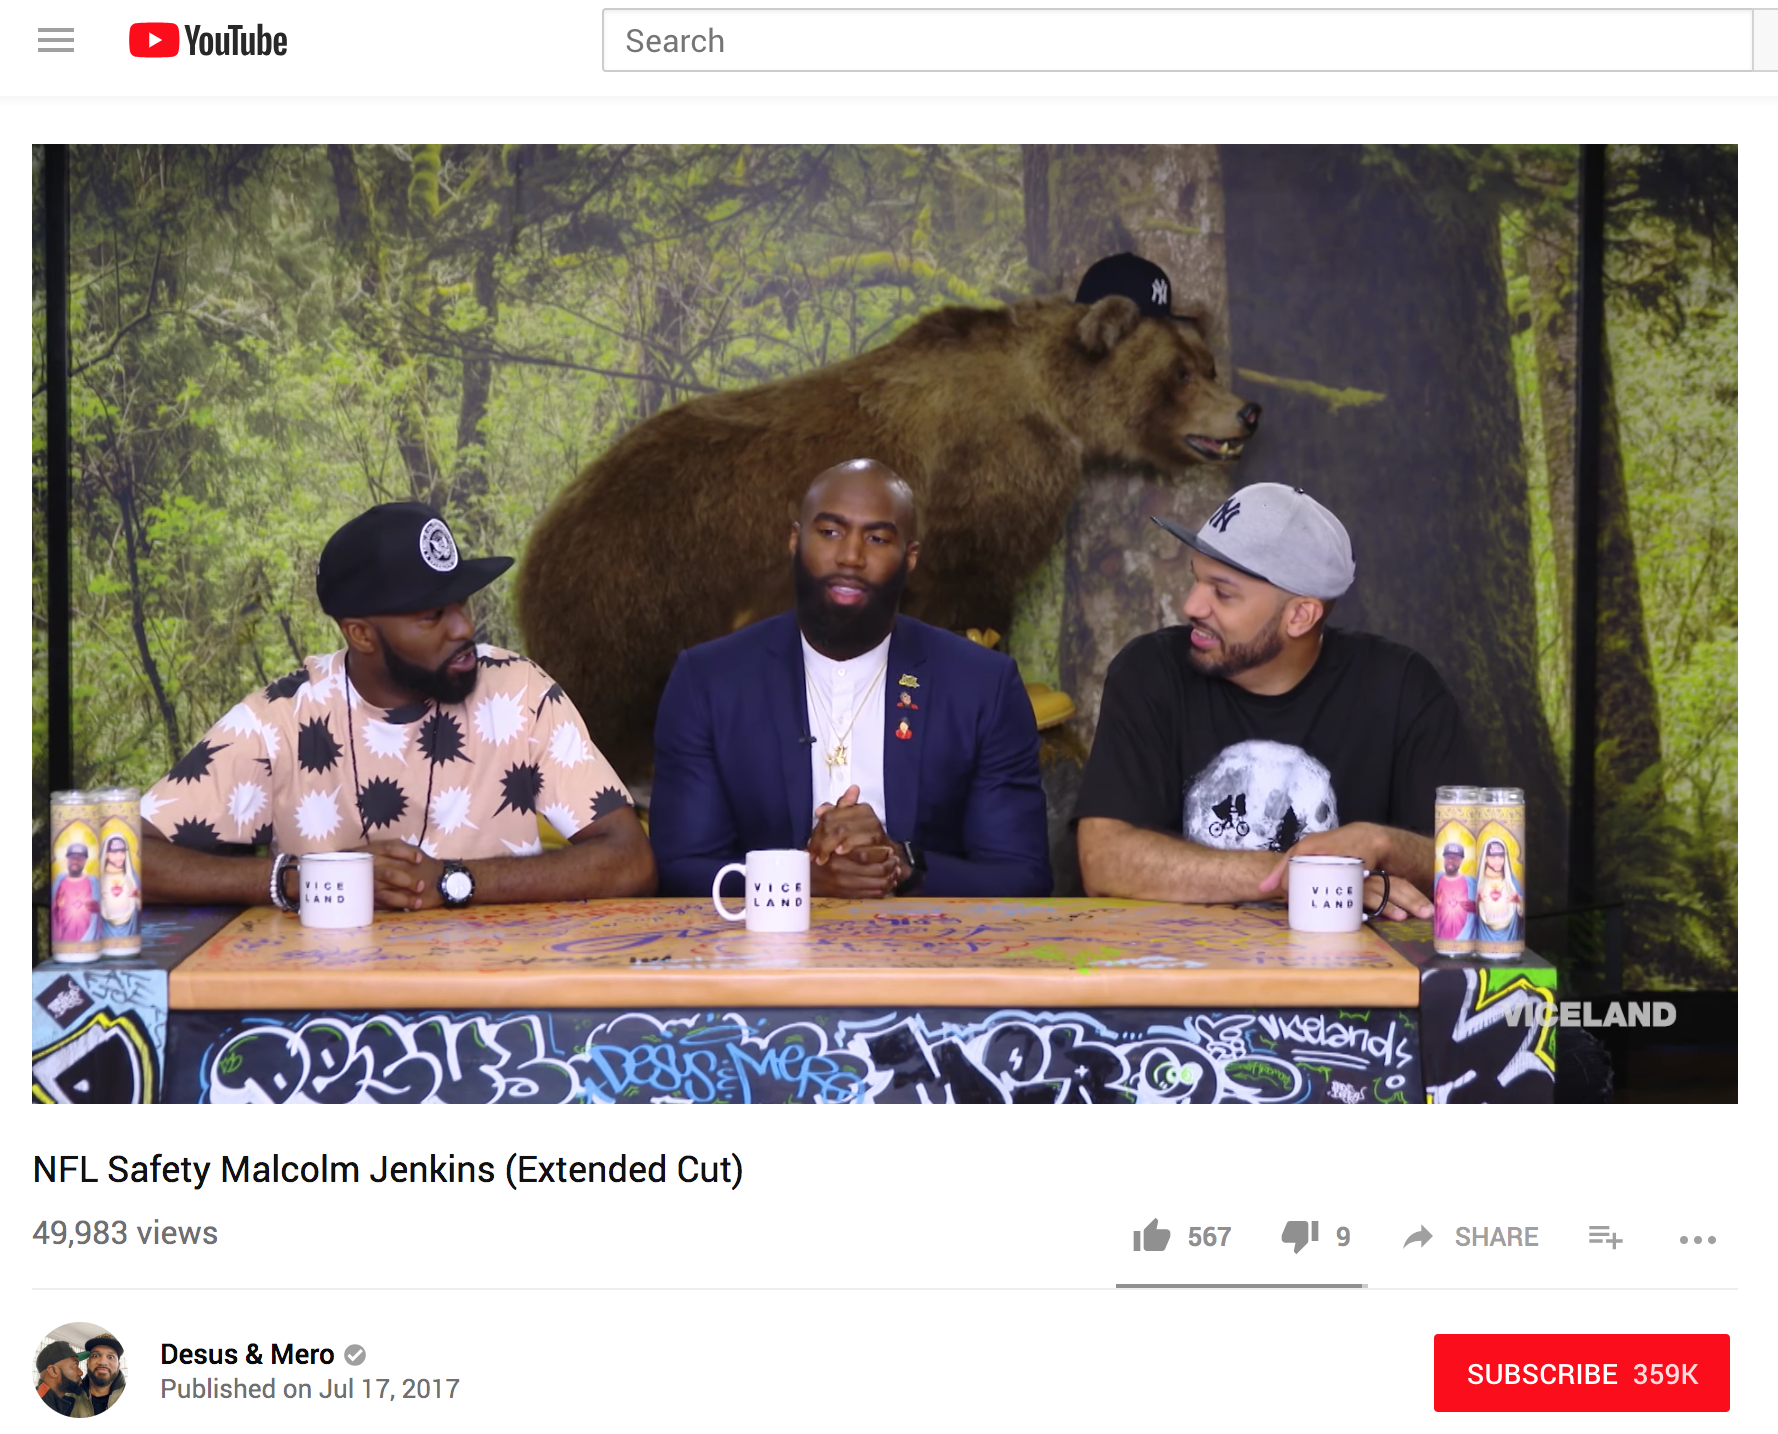 Desus & Mero -  We talk to Malcolm Jenkins about his immediate Super Bowl success, his biggest hit taken, and his passion for criminal justice advocacy.